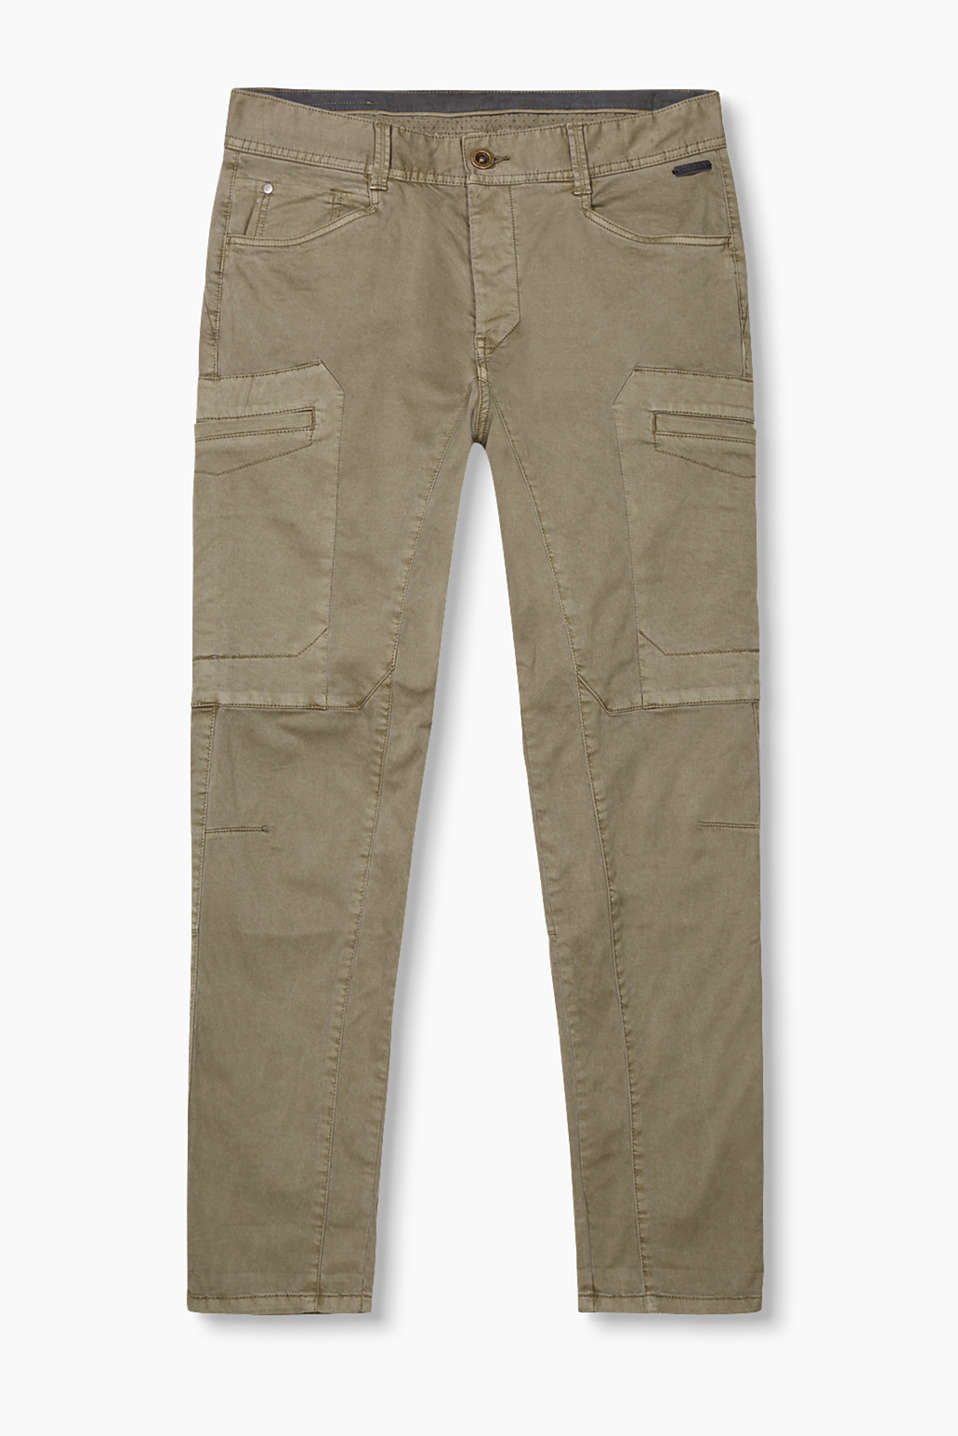 Casual cargo-style trousers in garment washed cotton with added stretch for comfort